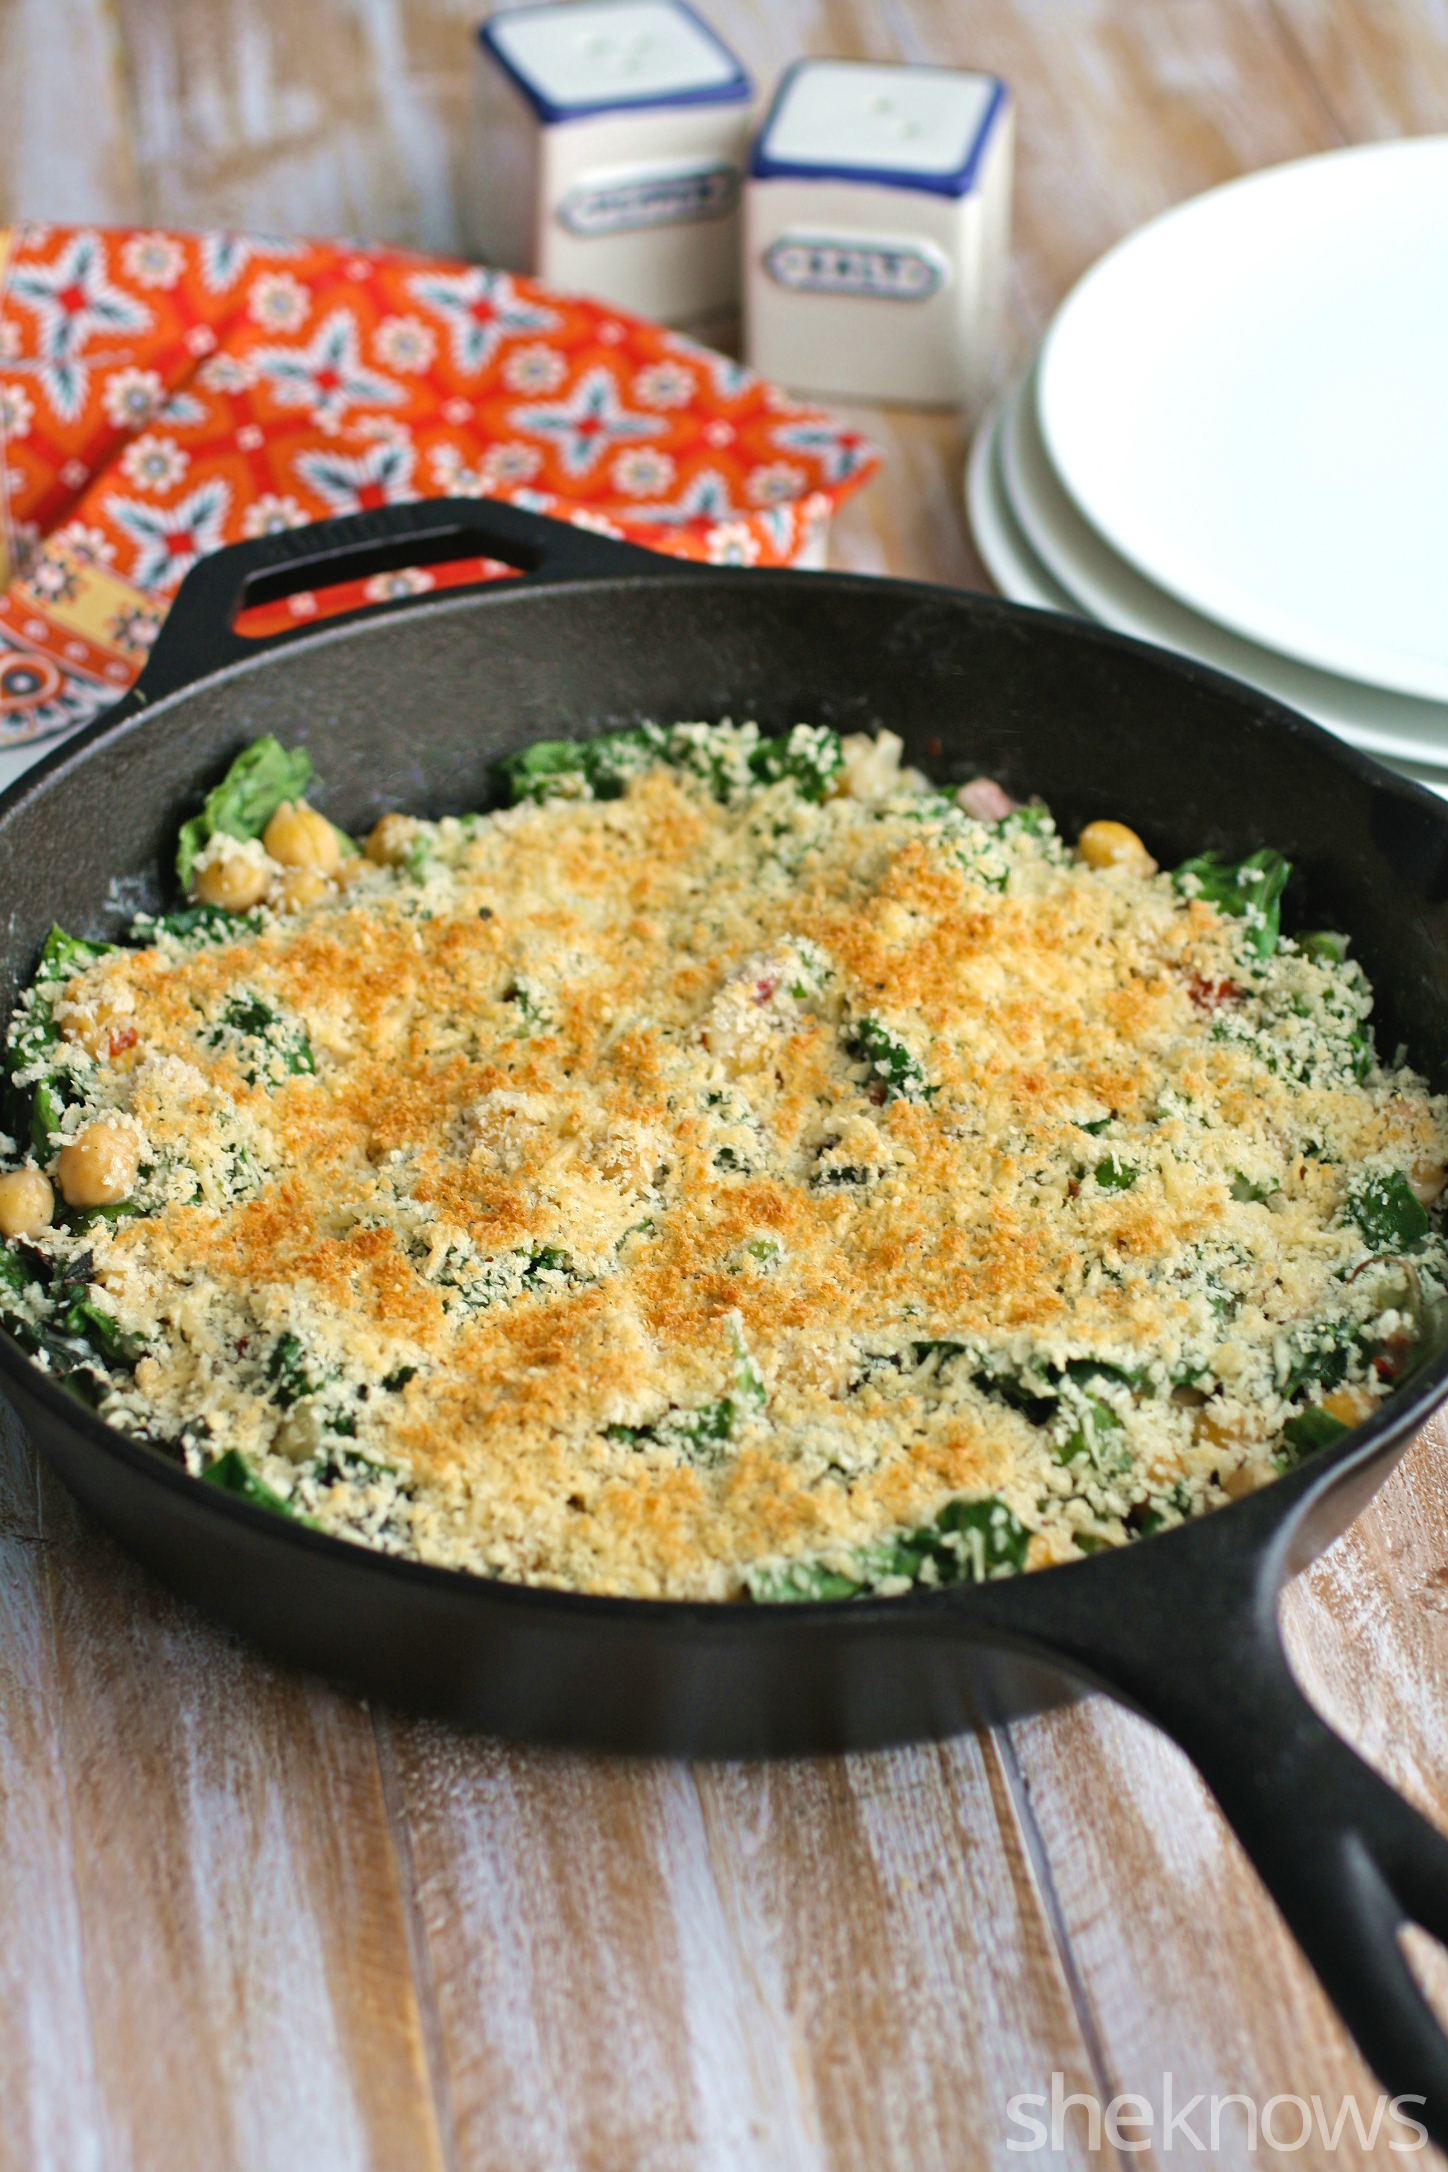 This creamy skillet Swiss chard and chickpeas with crunchy breadcrumbs is a one-pan dish